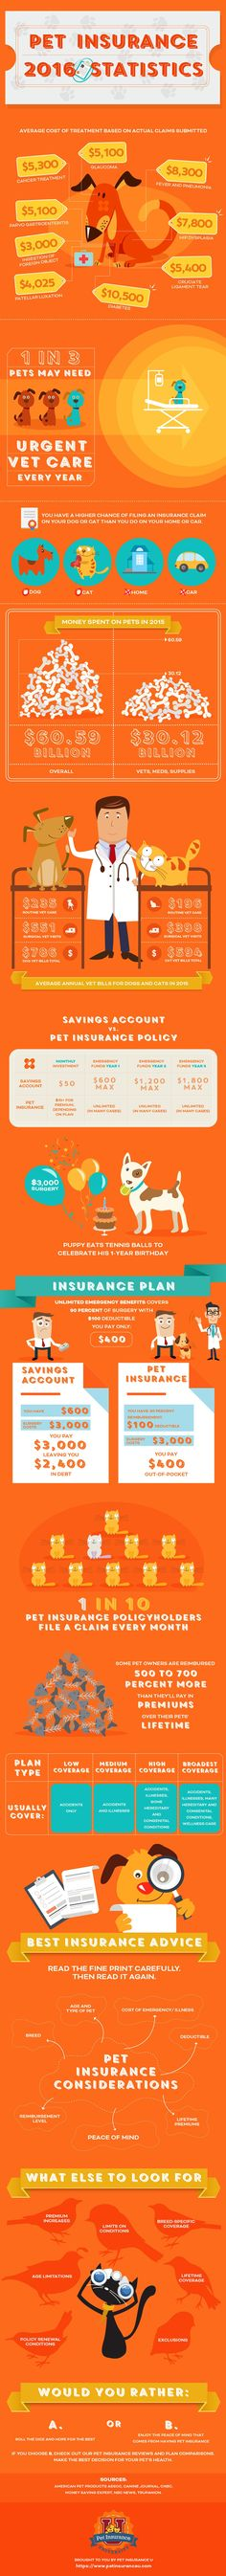 Find out everything you need to know about pet insurance using this infographic from Pet Insurance U. Updated with 2016 with facts, statistics, data and funny, adorable artwork of cats and dogs. Pet Insurance Reviews, Pet Health Insurance, Best Pet Insurance, Insurance Companies, Dog Food Online, Dog Information, Healthy Pets, Pet Life, Cat Health